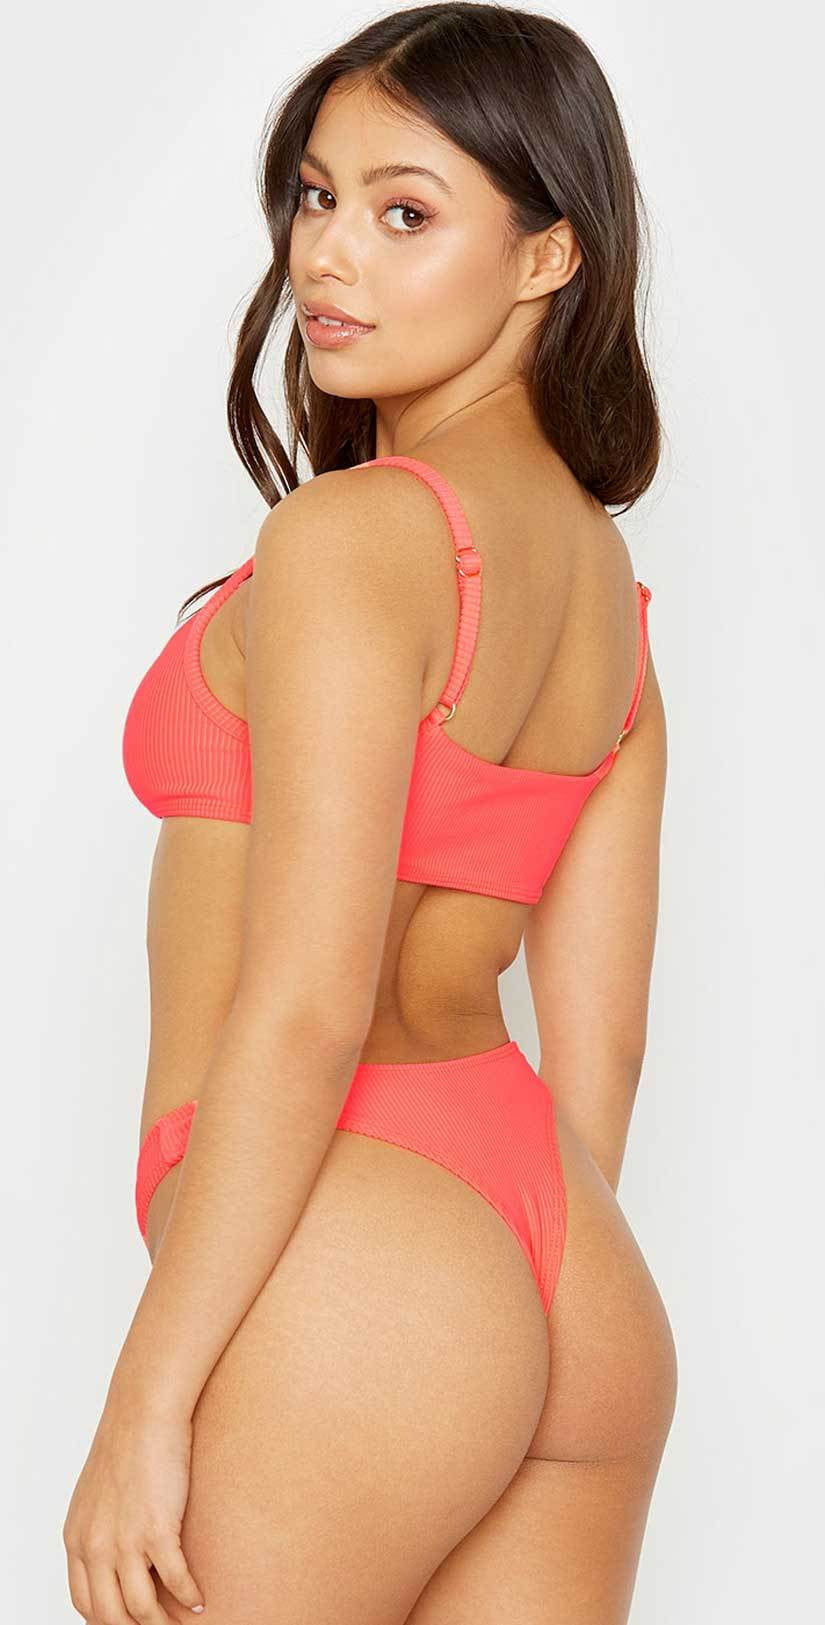 Frankies Bikinis Boots Bikini Bottom in Rave Heart: